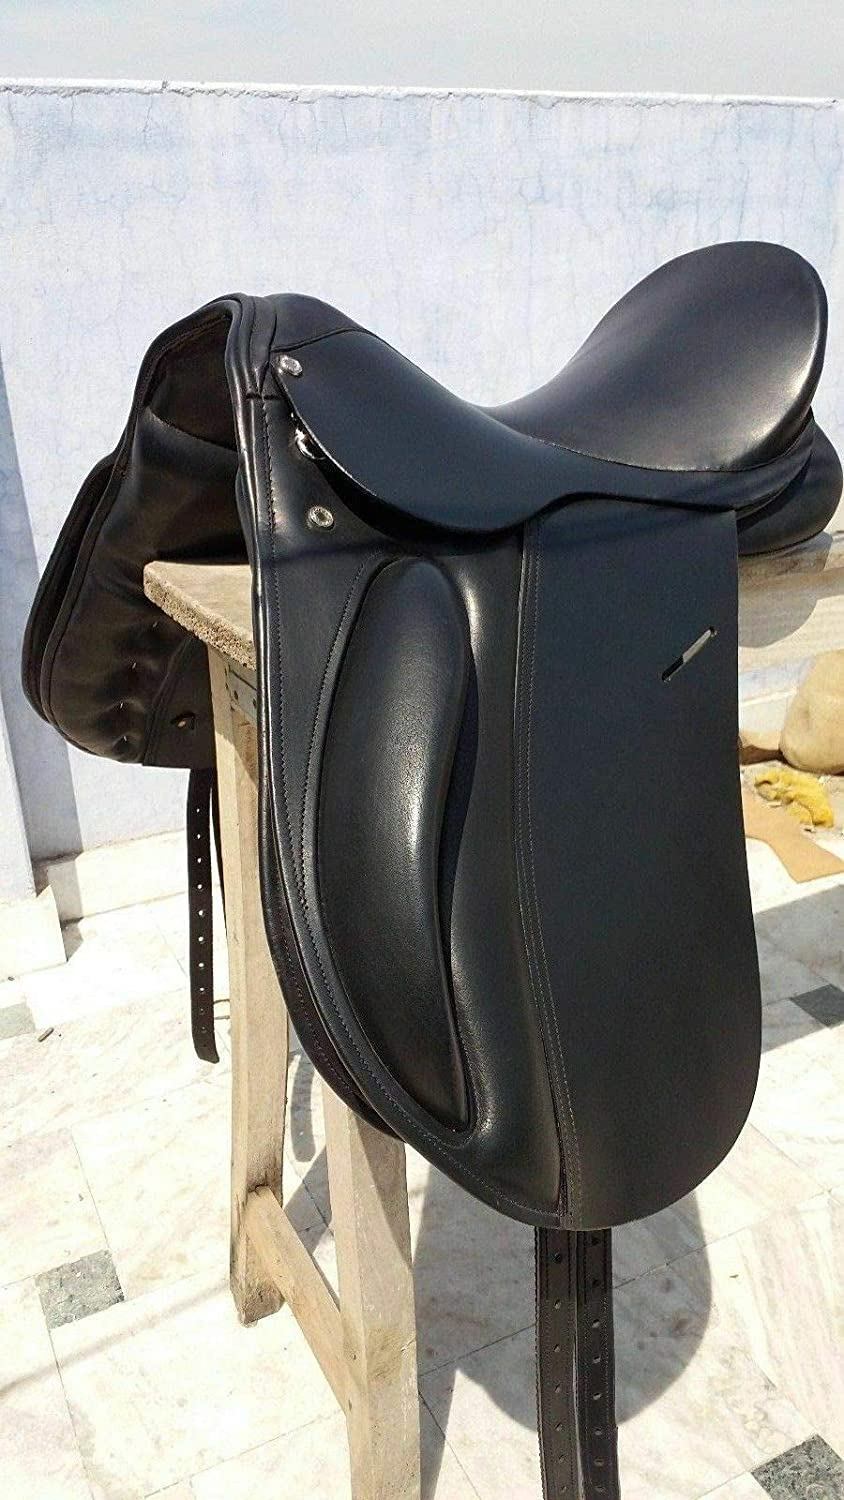 New Premium Leather Changeable Gullet Dressage All Purpose English Horse Racing Tack & Saddle (17 Inch, BlackES517)